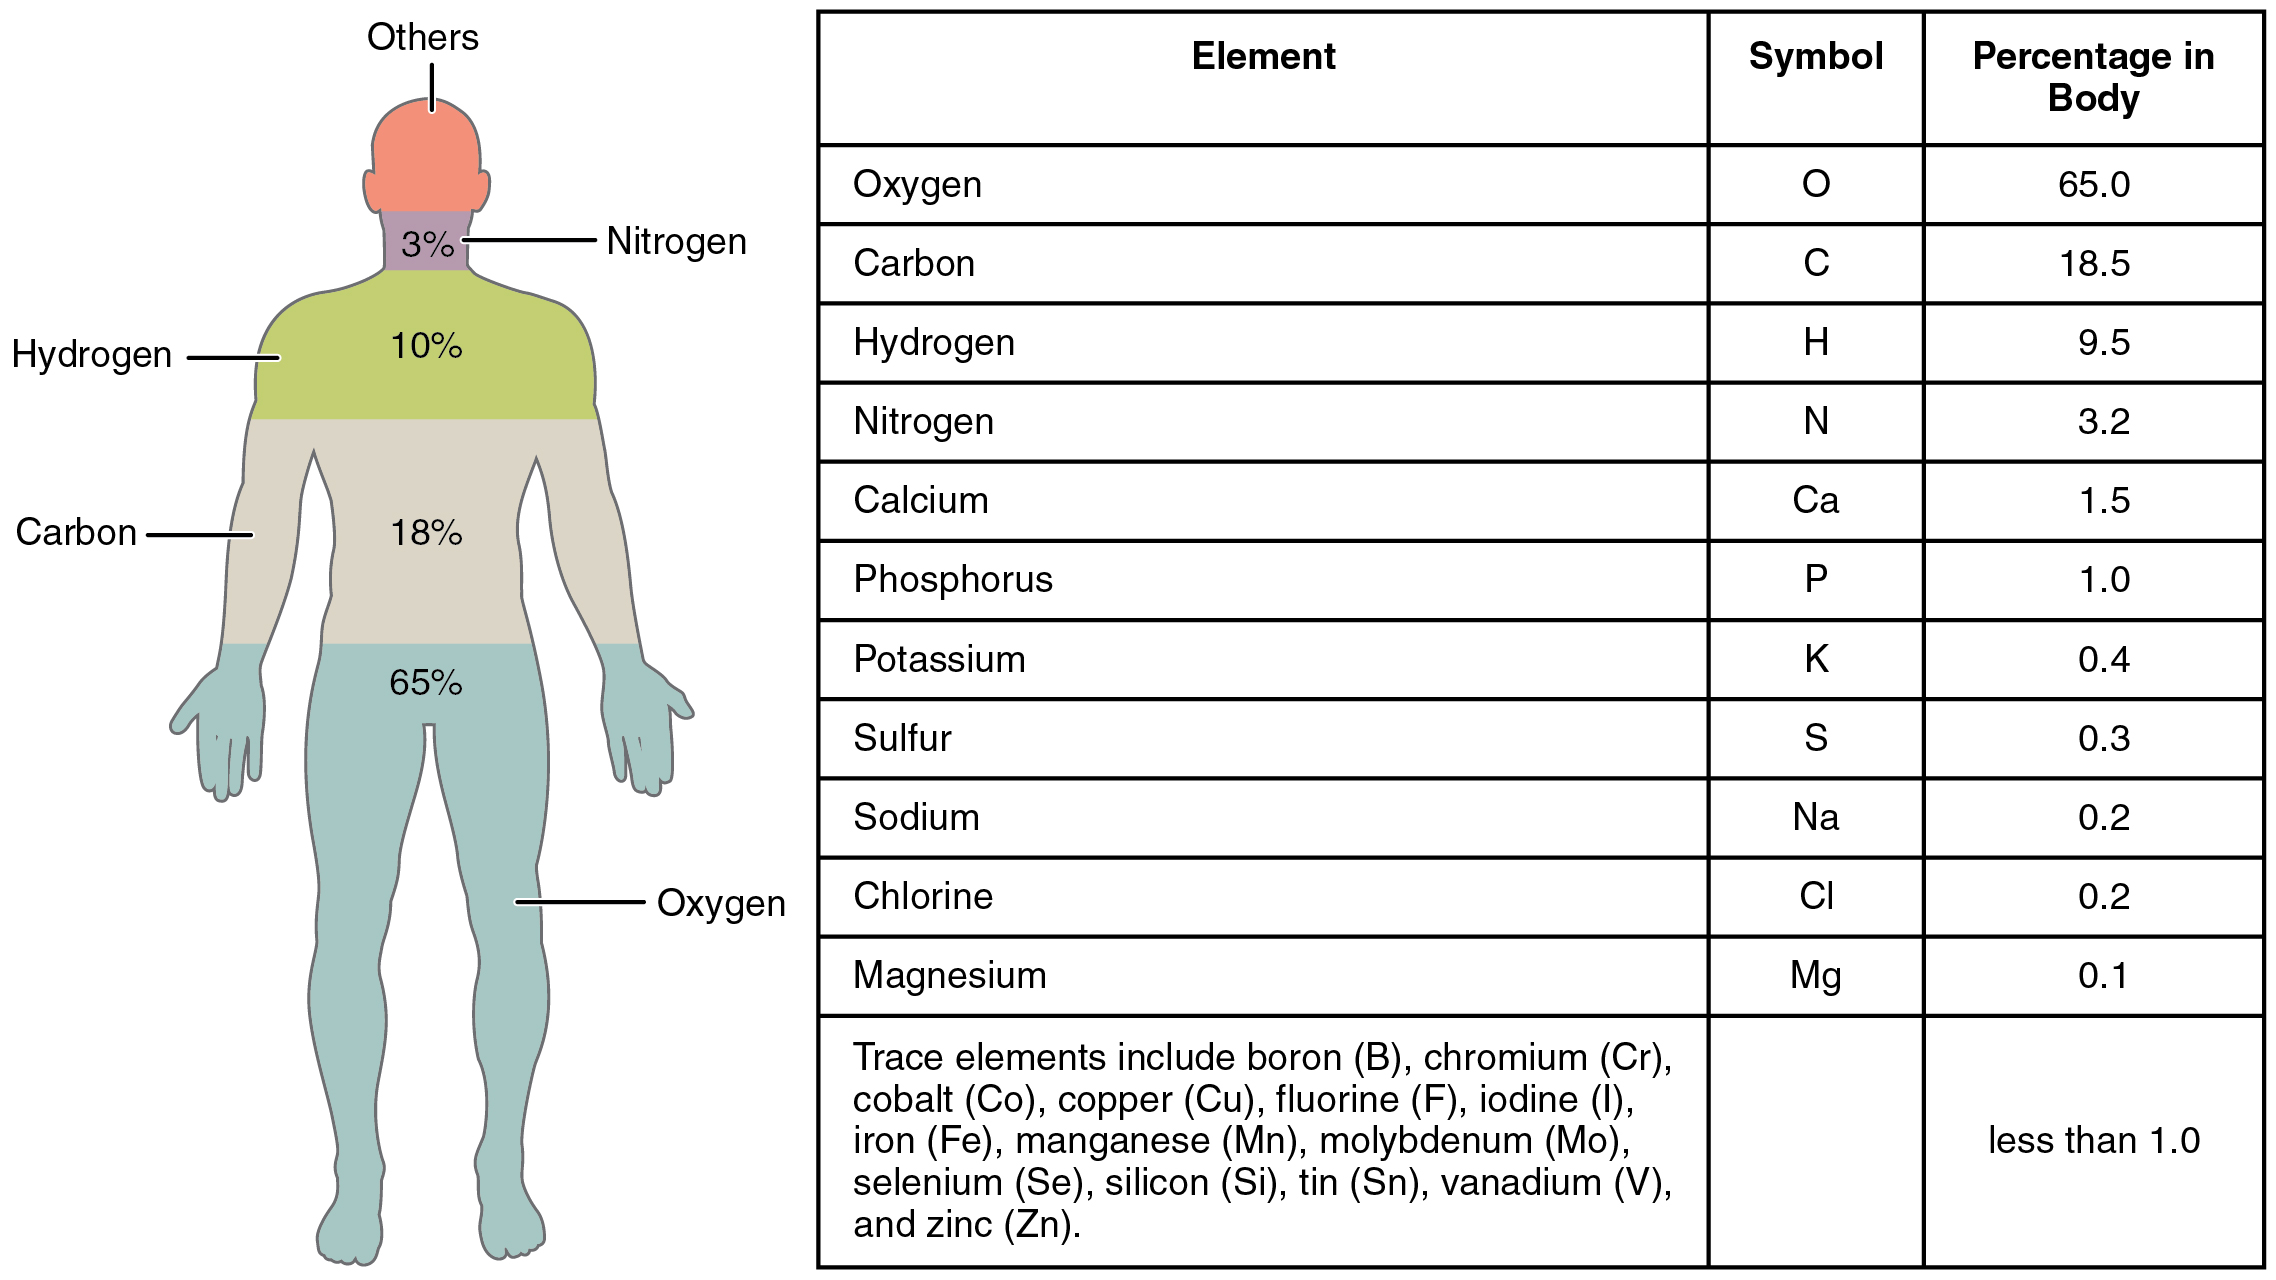 Elements and atoms the building blocks of matter this figure shows a human body with the percentage of the main elements in the body gamestrikefo Image collections